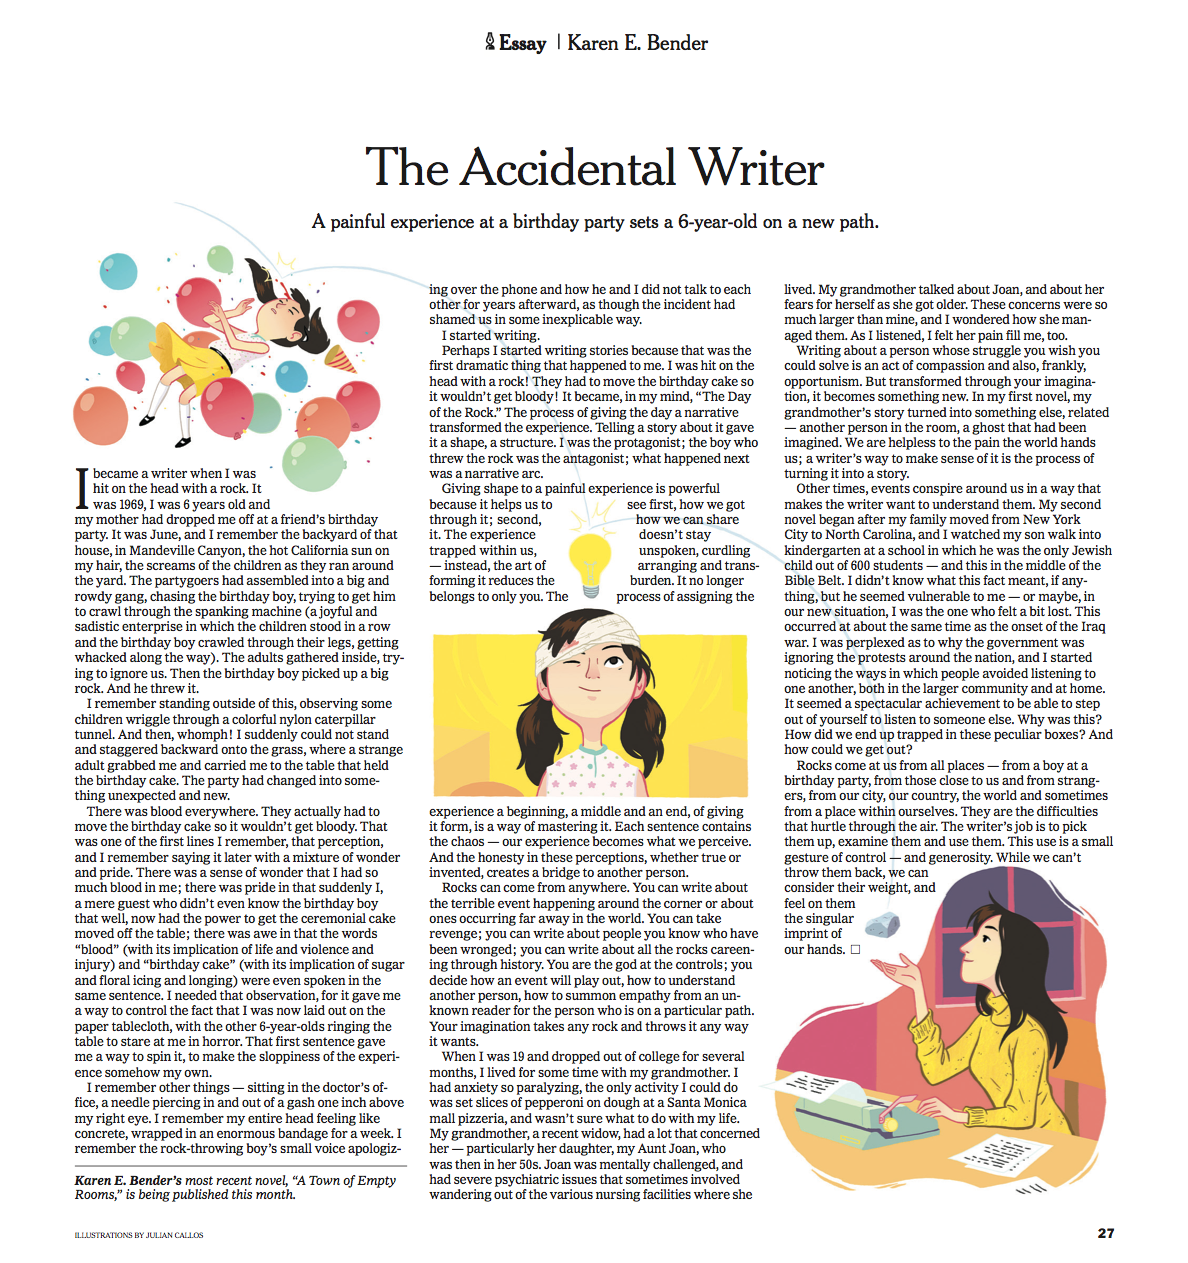 personal essays new york times The new york times the caregiver's bookshelf: essays on the end a purring cat, and 22 very personal essays about death and dying.